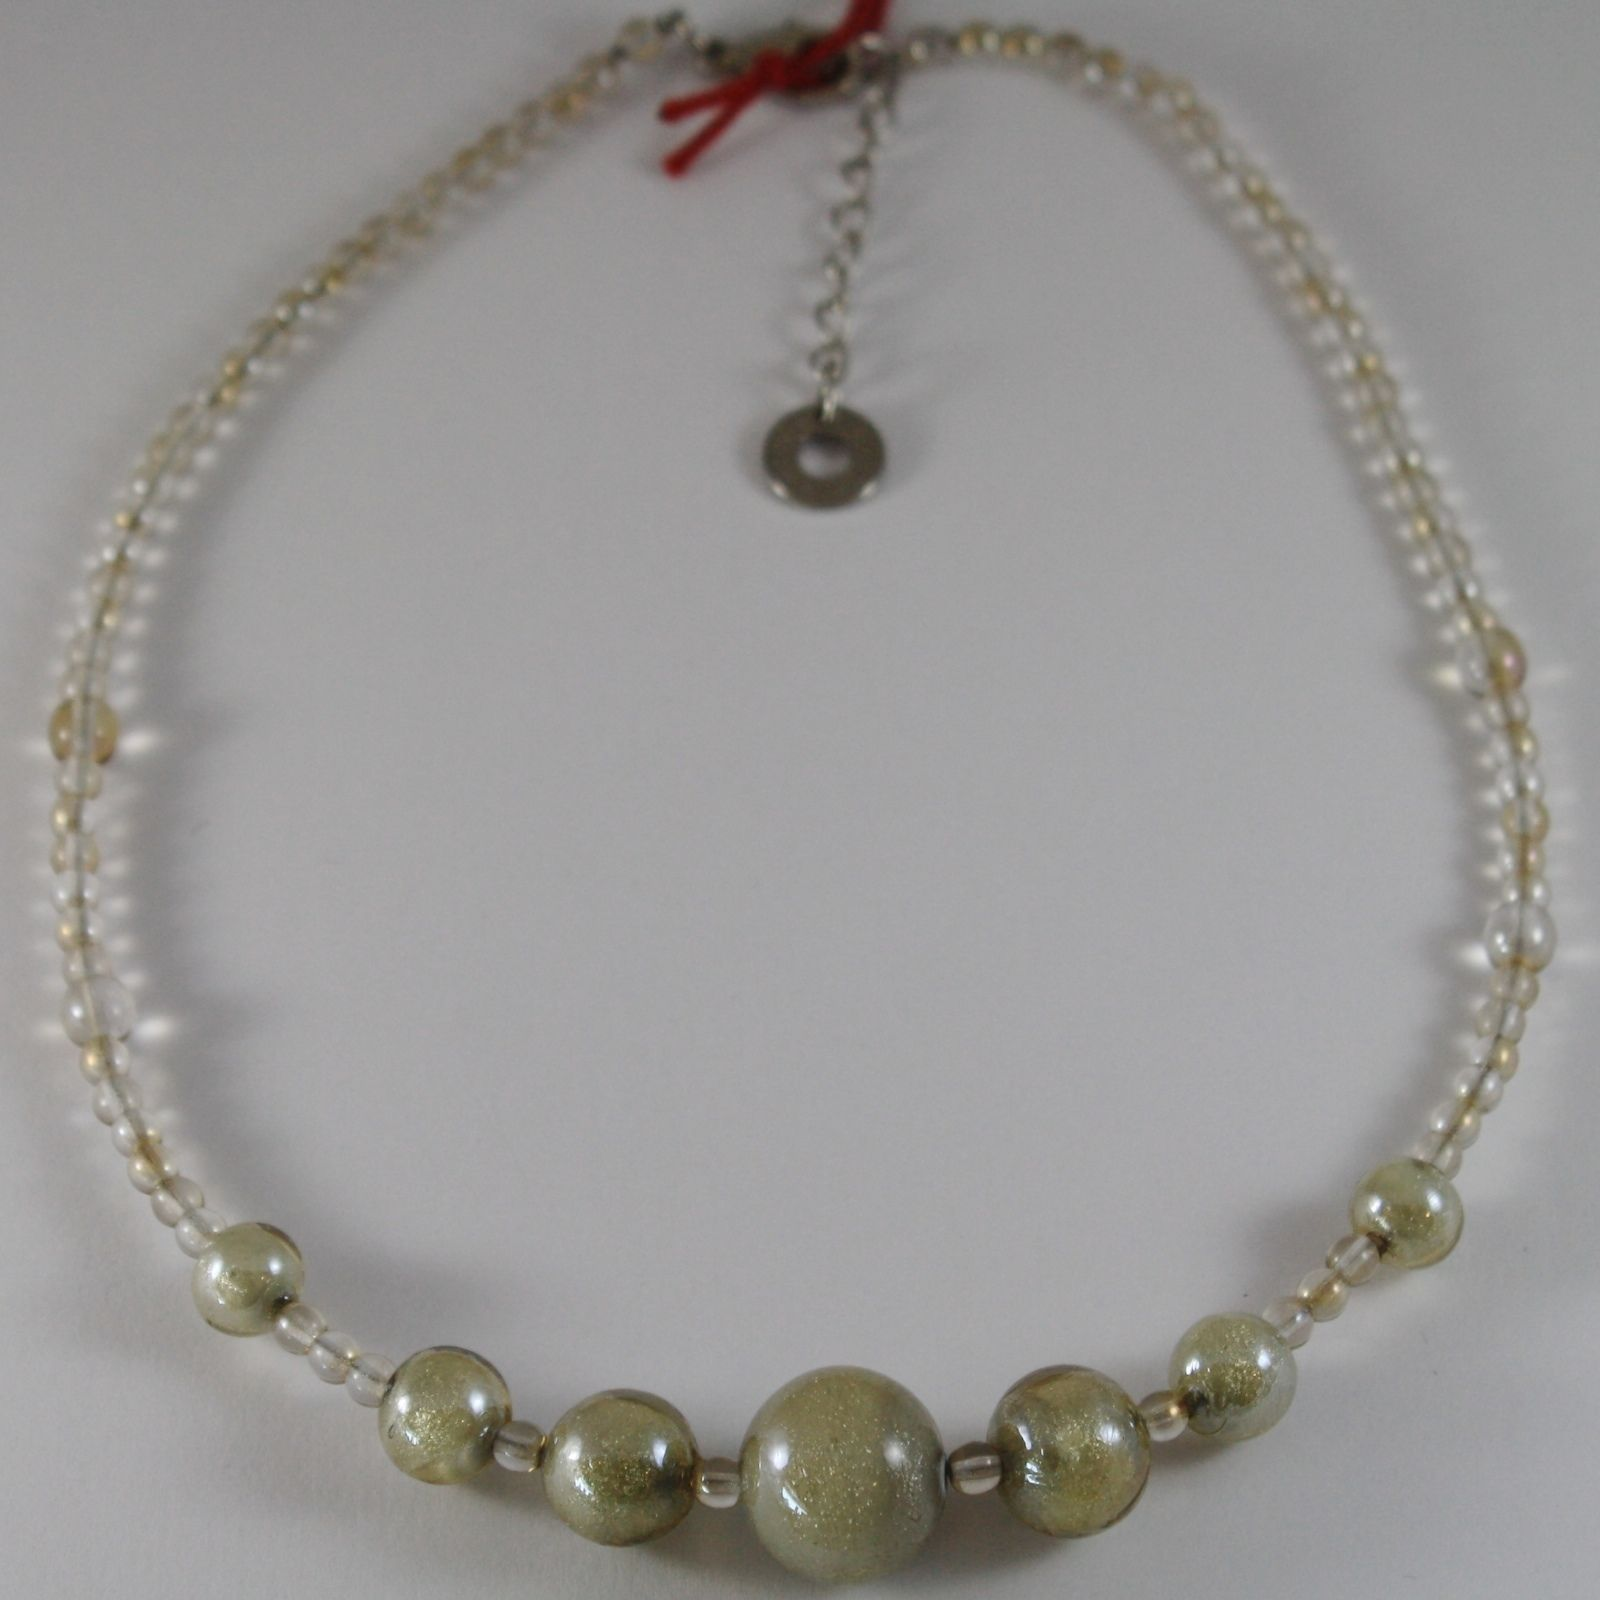 ANTICA MURRINA VENEZIA GRAY SPHERE BALLS NECKLACE, PERLEADI, 50 CM, 20 INCHES